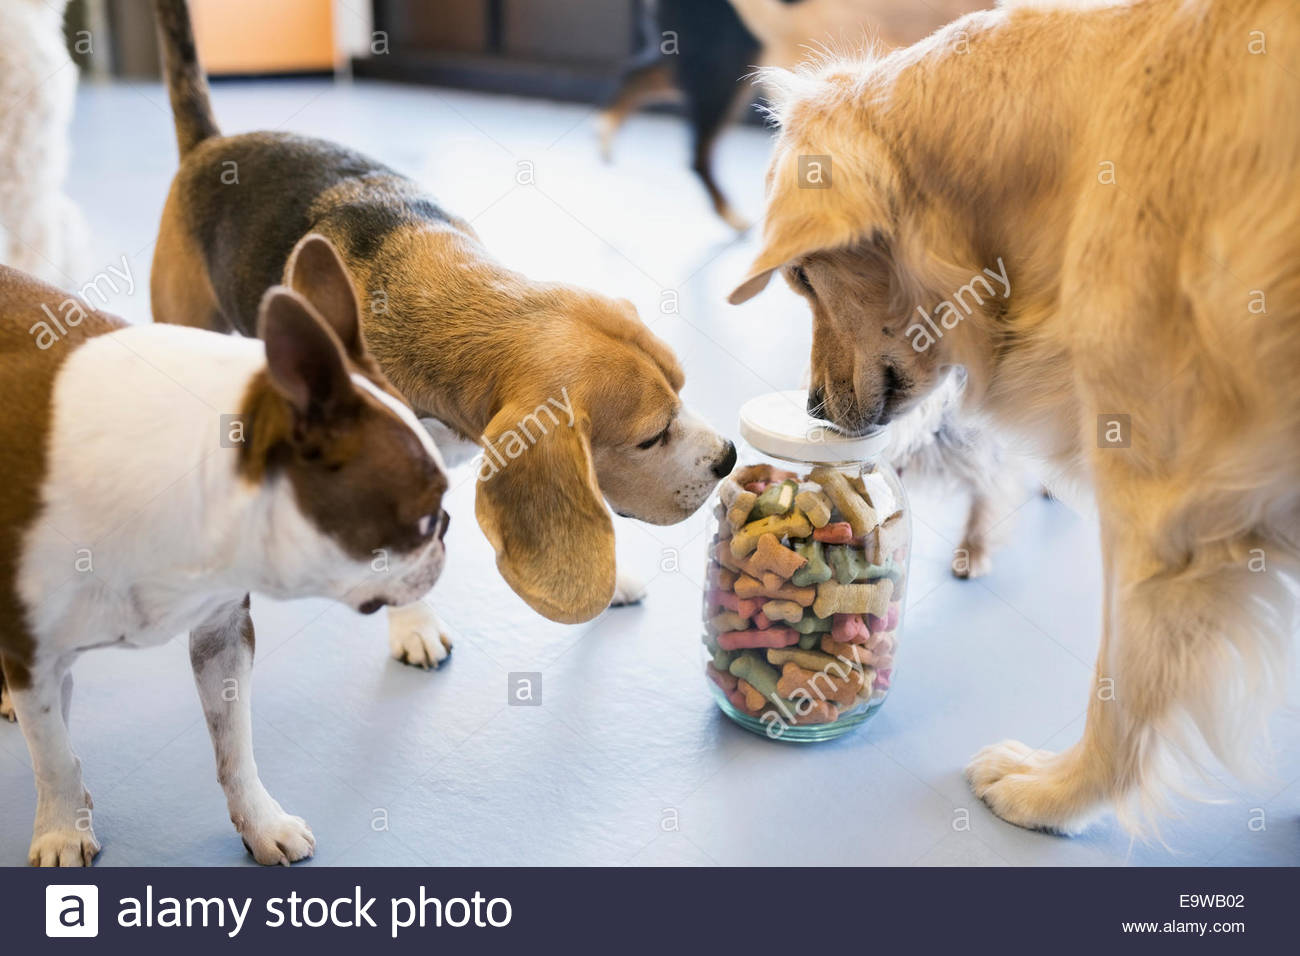 Dogs sniffing jar with biscuits - Stock Image